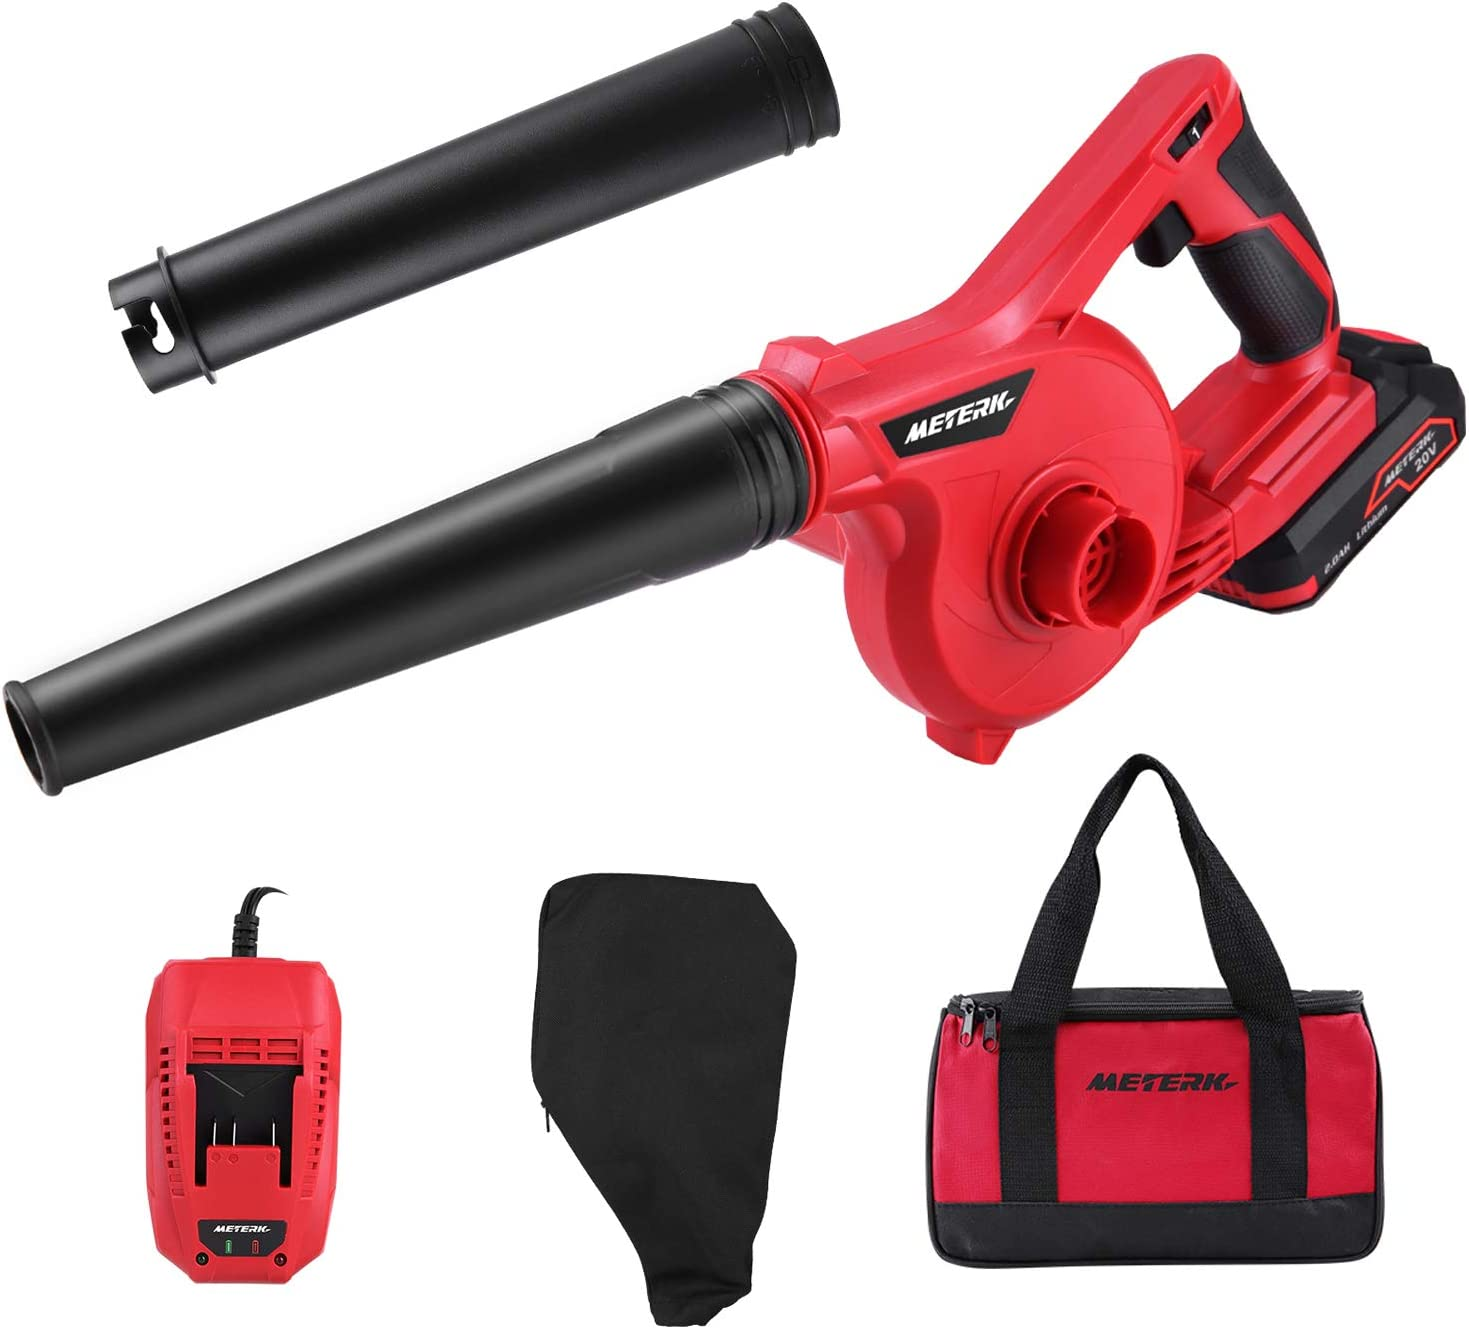 Meterk Cordless Leaf Blower 20V 2.0 Ah Lithium-ion Battery&Quick Charger , 150MPH, 3 Gear Variable Speed, Mini Lightweight Cordless Blower